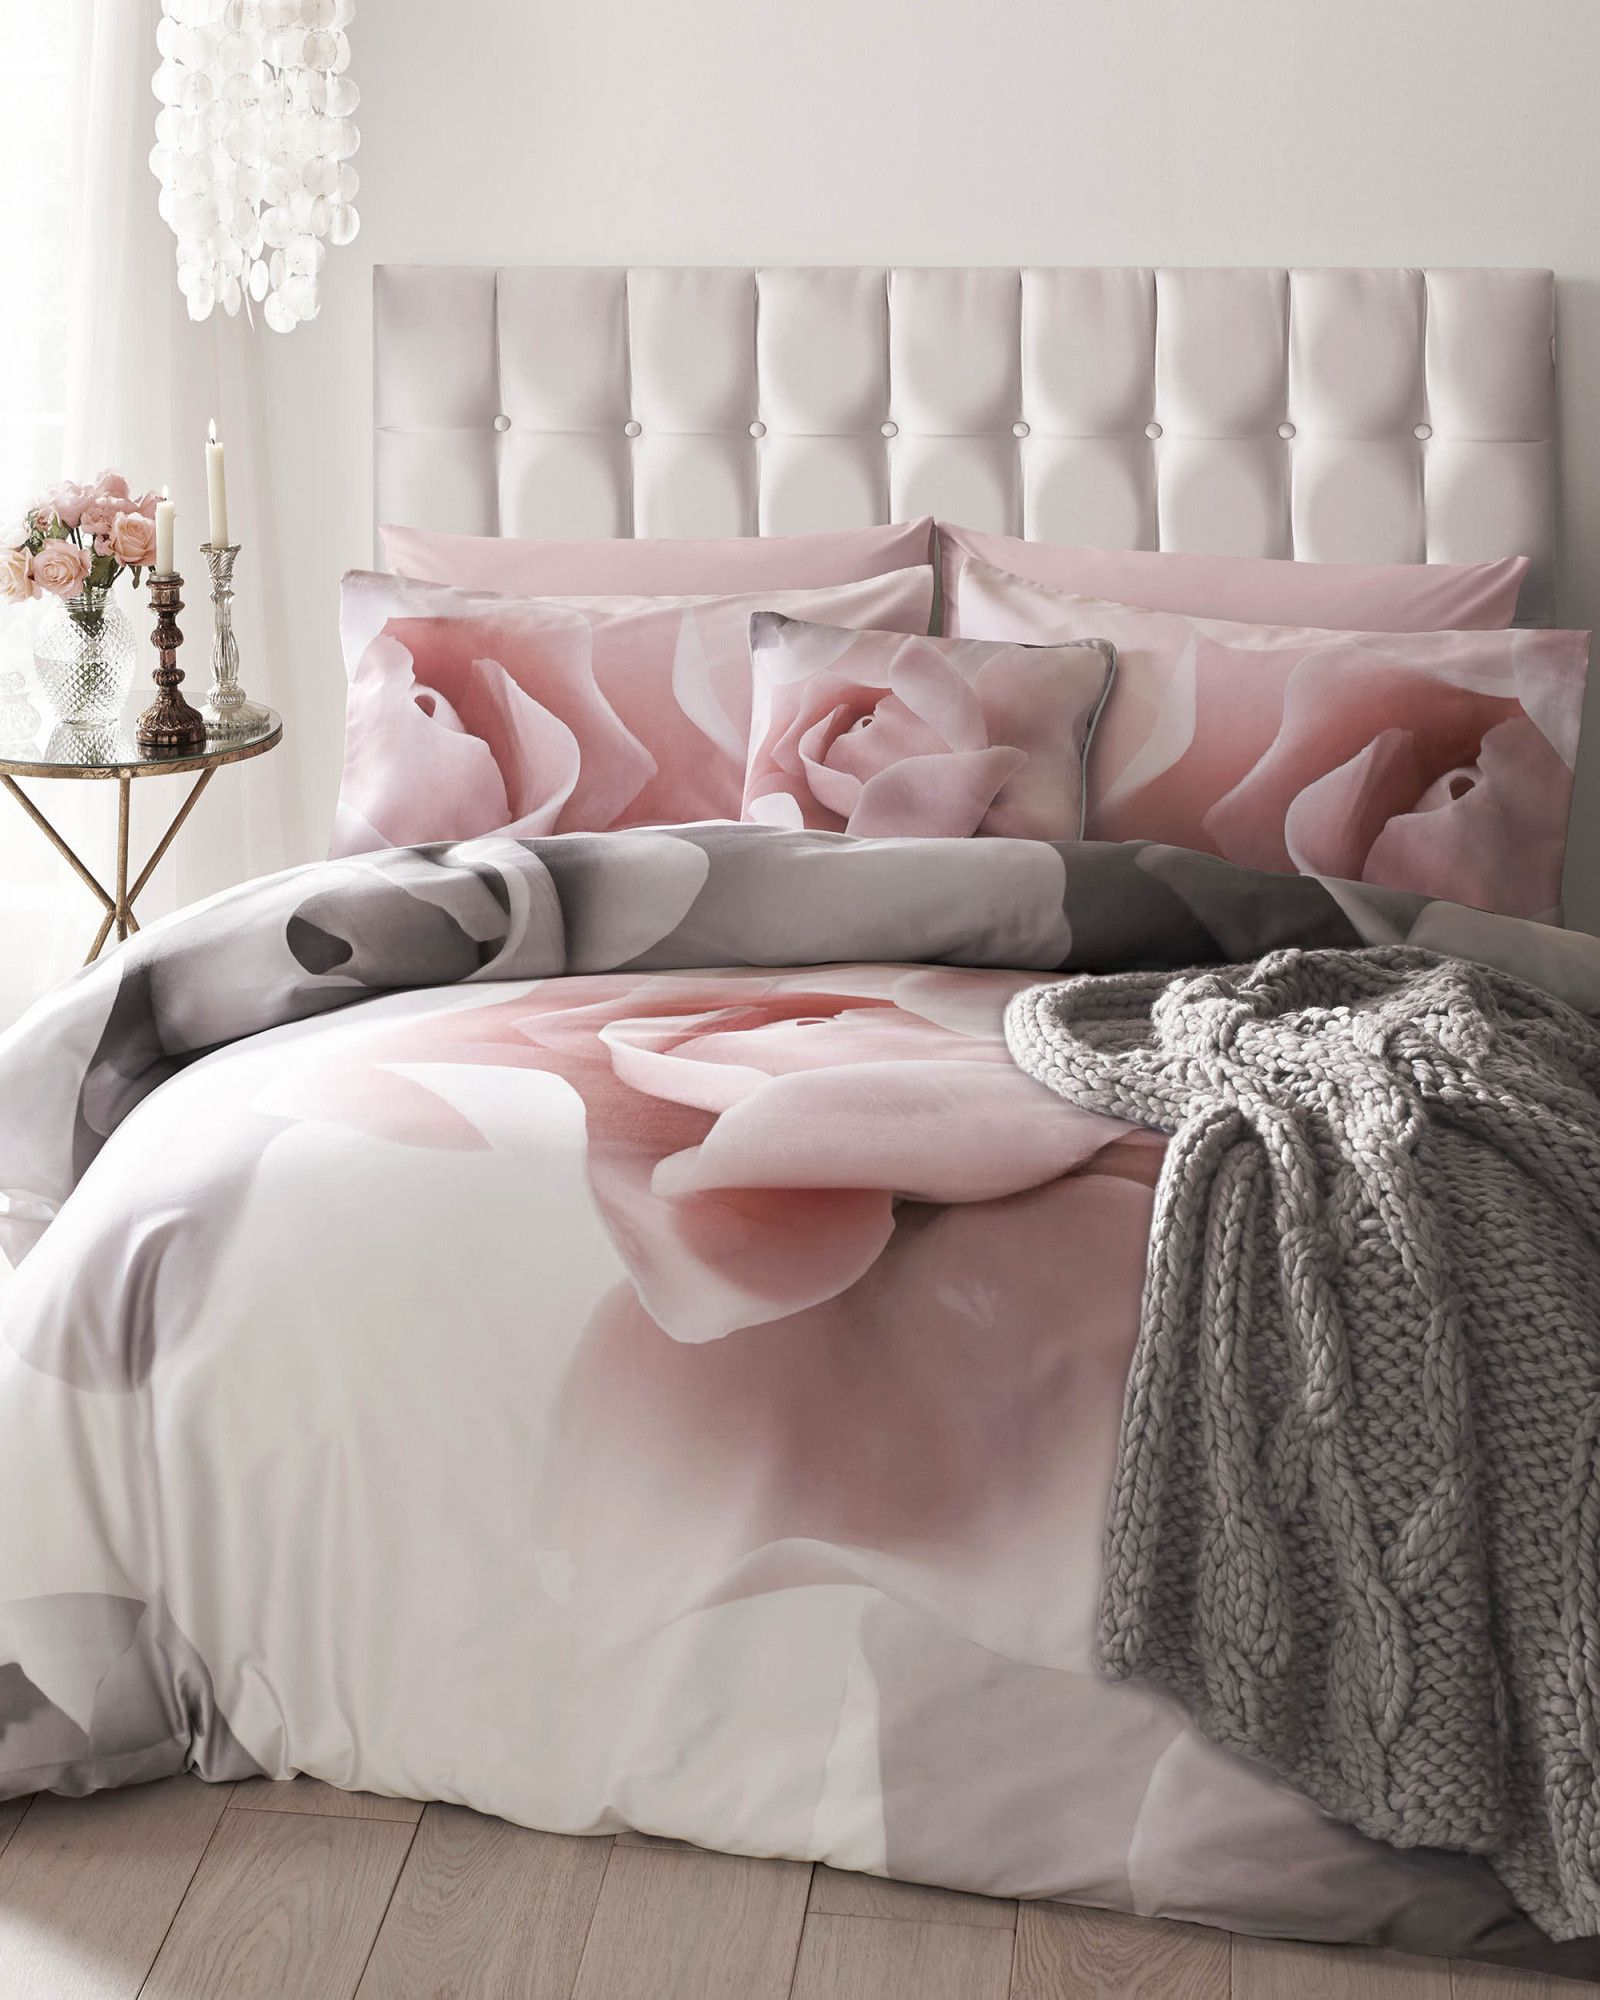 Pink Duvet Cover Ted Baker Porcelain Rose Super King Duvet Cover Pink And Grey